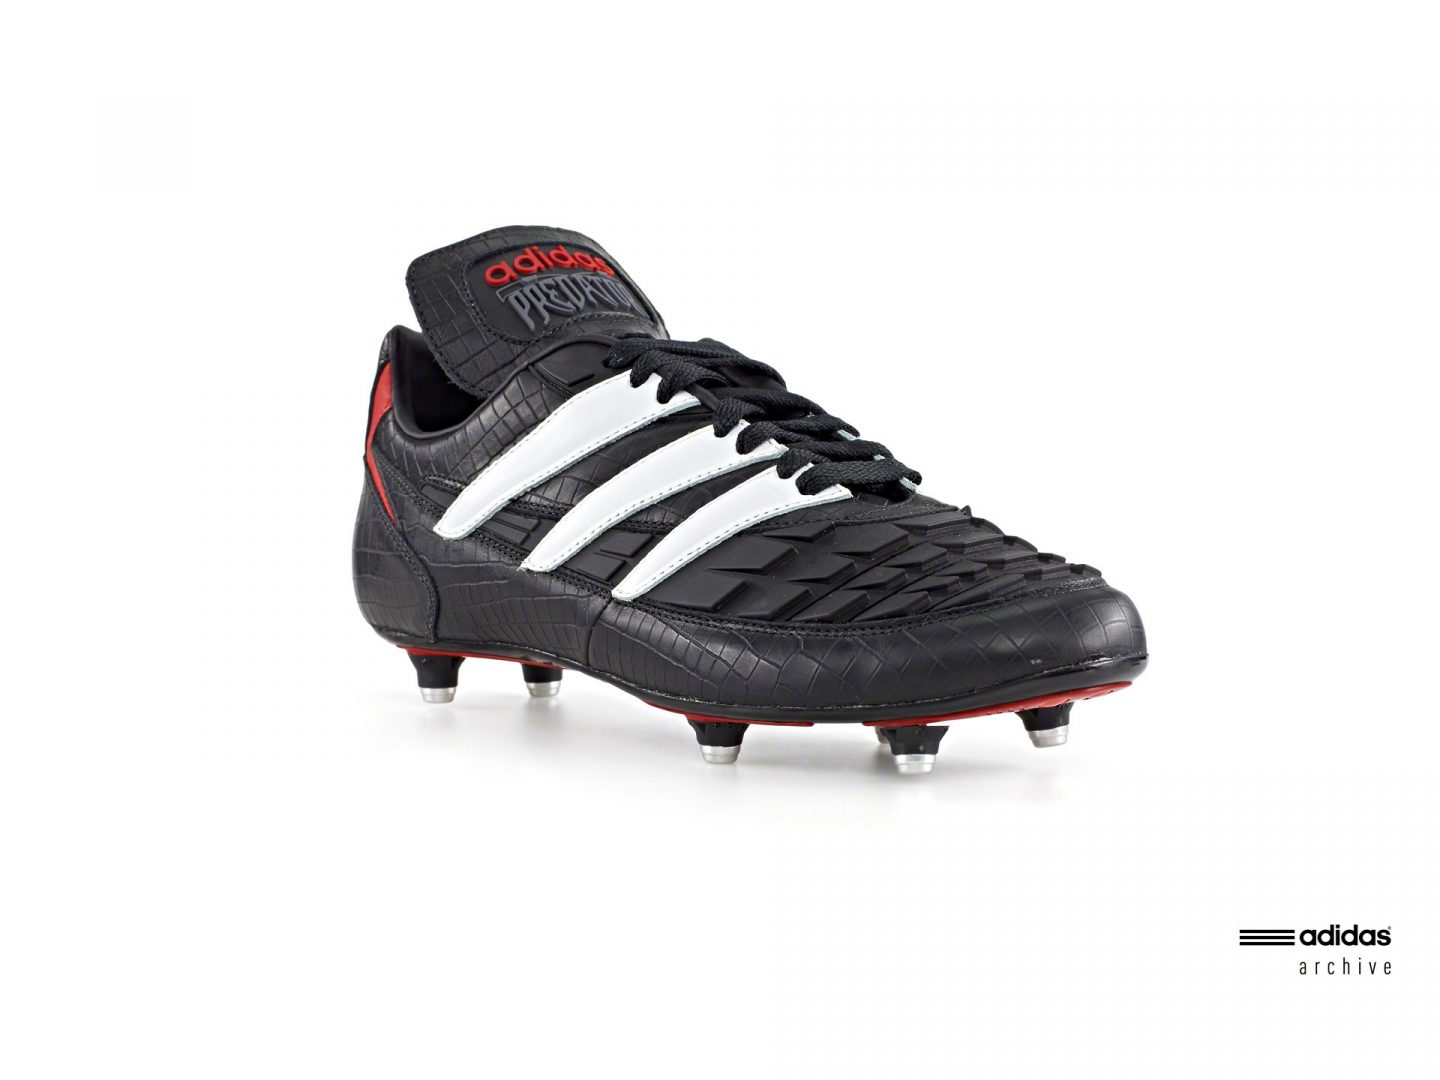 The black and white Predator boot with red details from 1995. aidas; Predator; football; Champions; Legend; Icon; soccer; GamePlan A